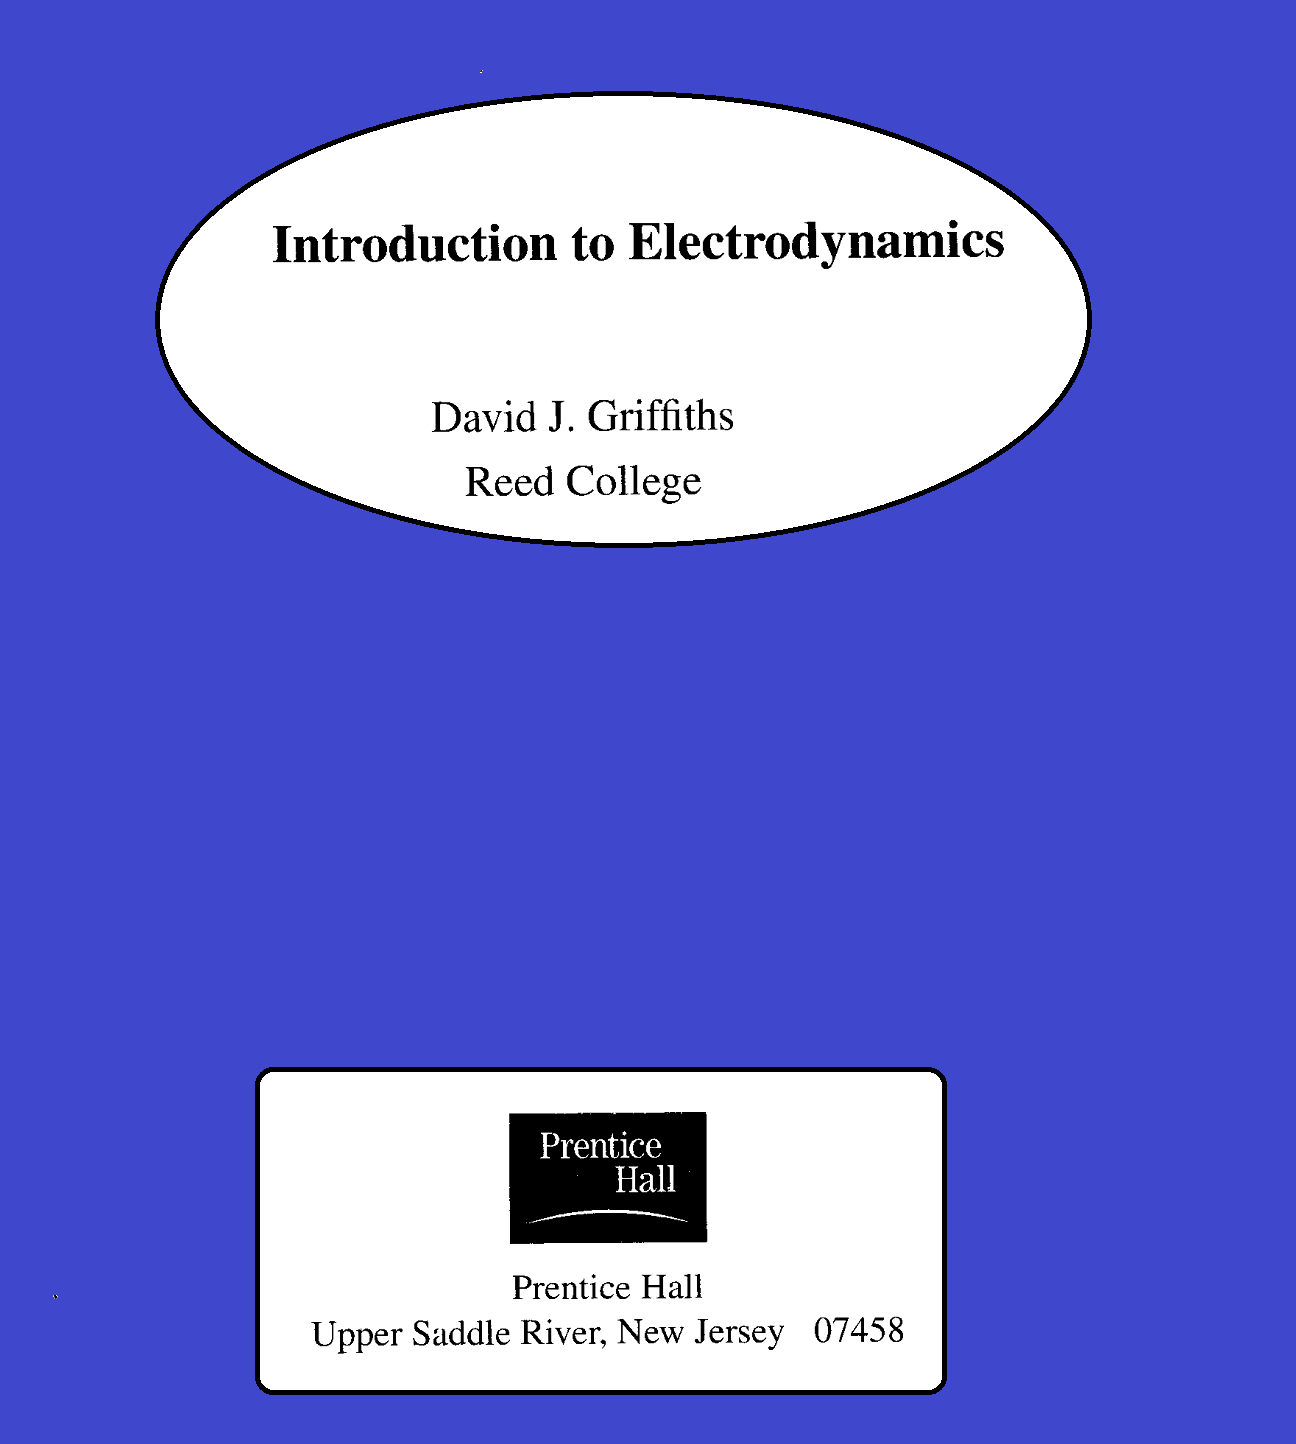 Introduction To Electrodynamics 3rd Edition Printed Circuit Board Cleaner Spray Tc 23 500 Ml Shopcluescom Array Free Pdf Books Of House Physics Rh Houseofphy Blogspot Com